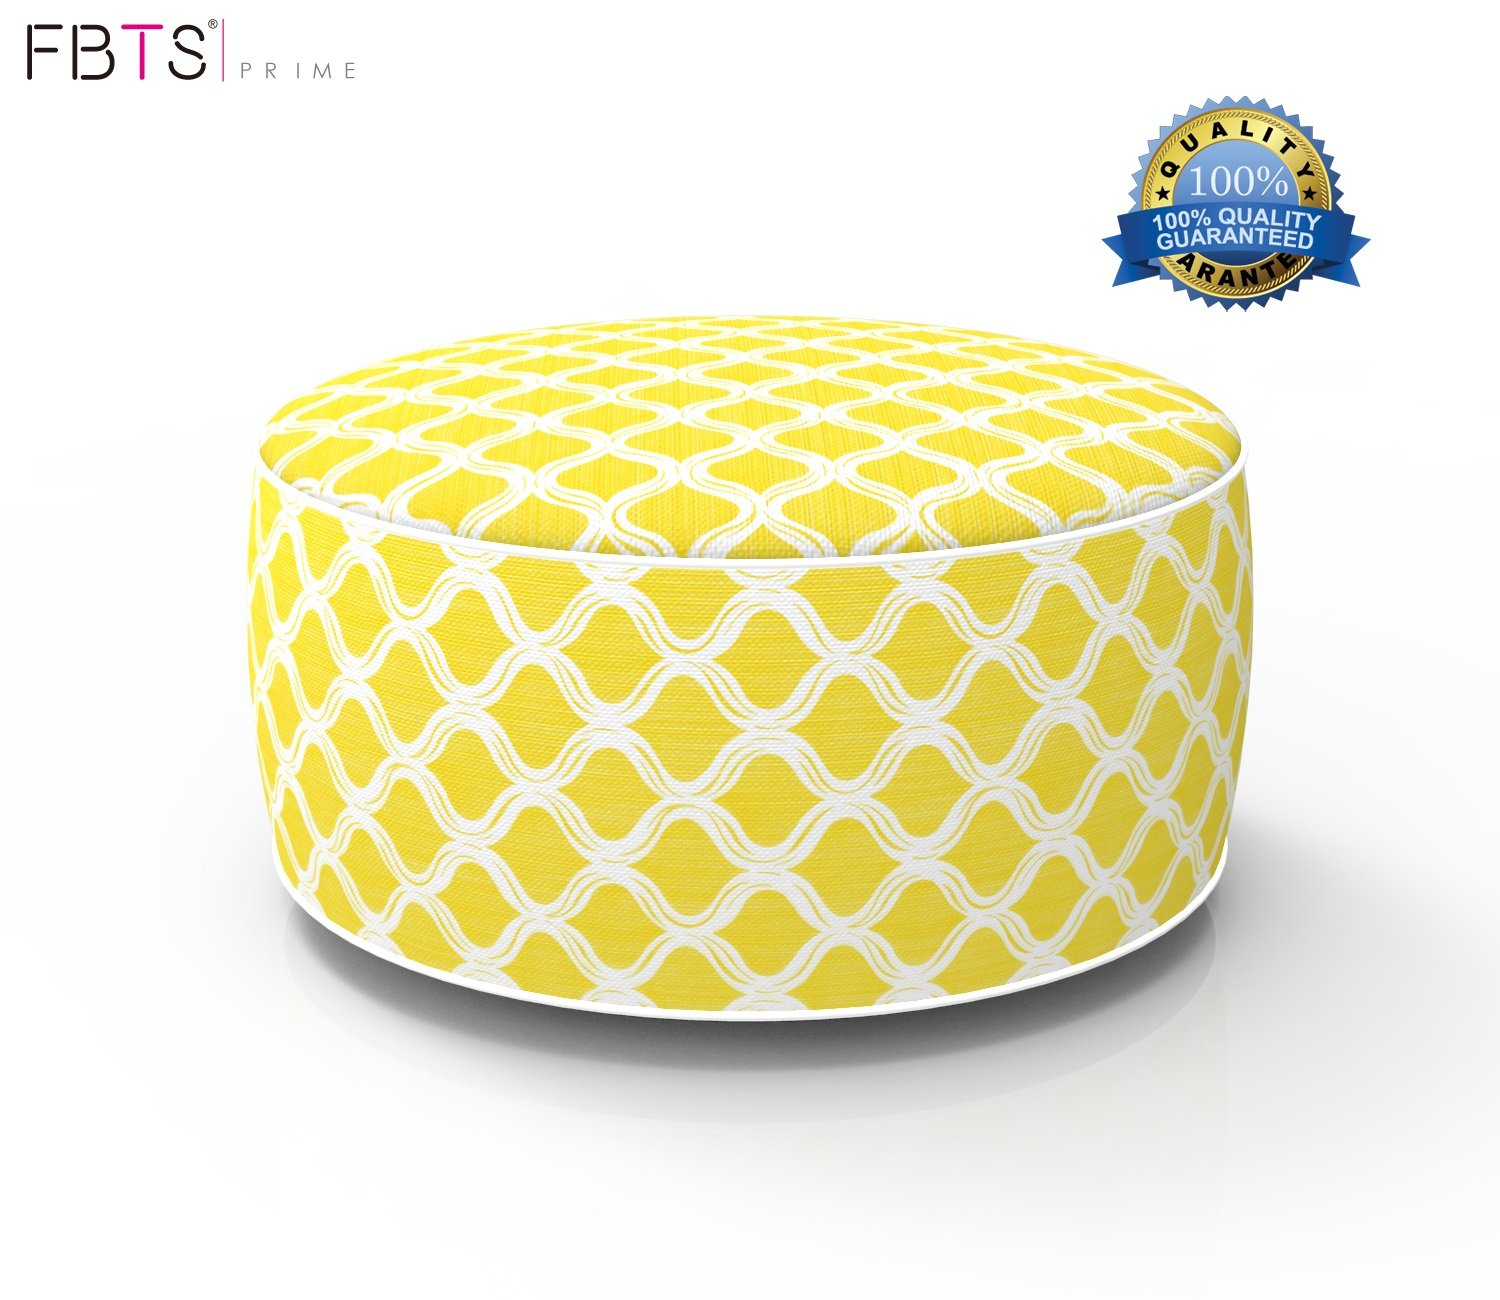 FBTS Prime Outdoor Inflatable Ottoman Yellow Round Patio Foot Stools and Ottomans Suitable for Kids and Adults Portable Travel Footstool Used for Outdoor Camping Home Yoga Foot Rest